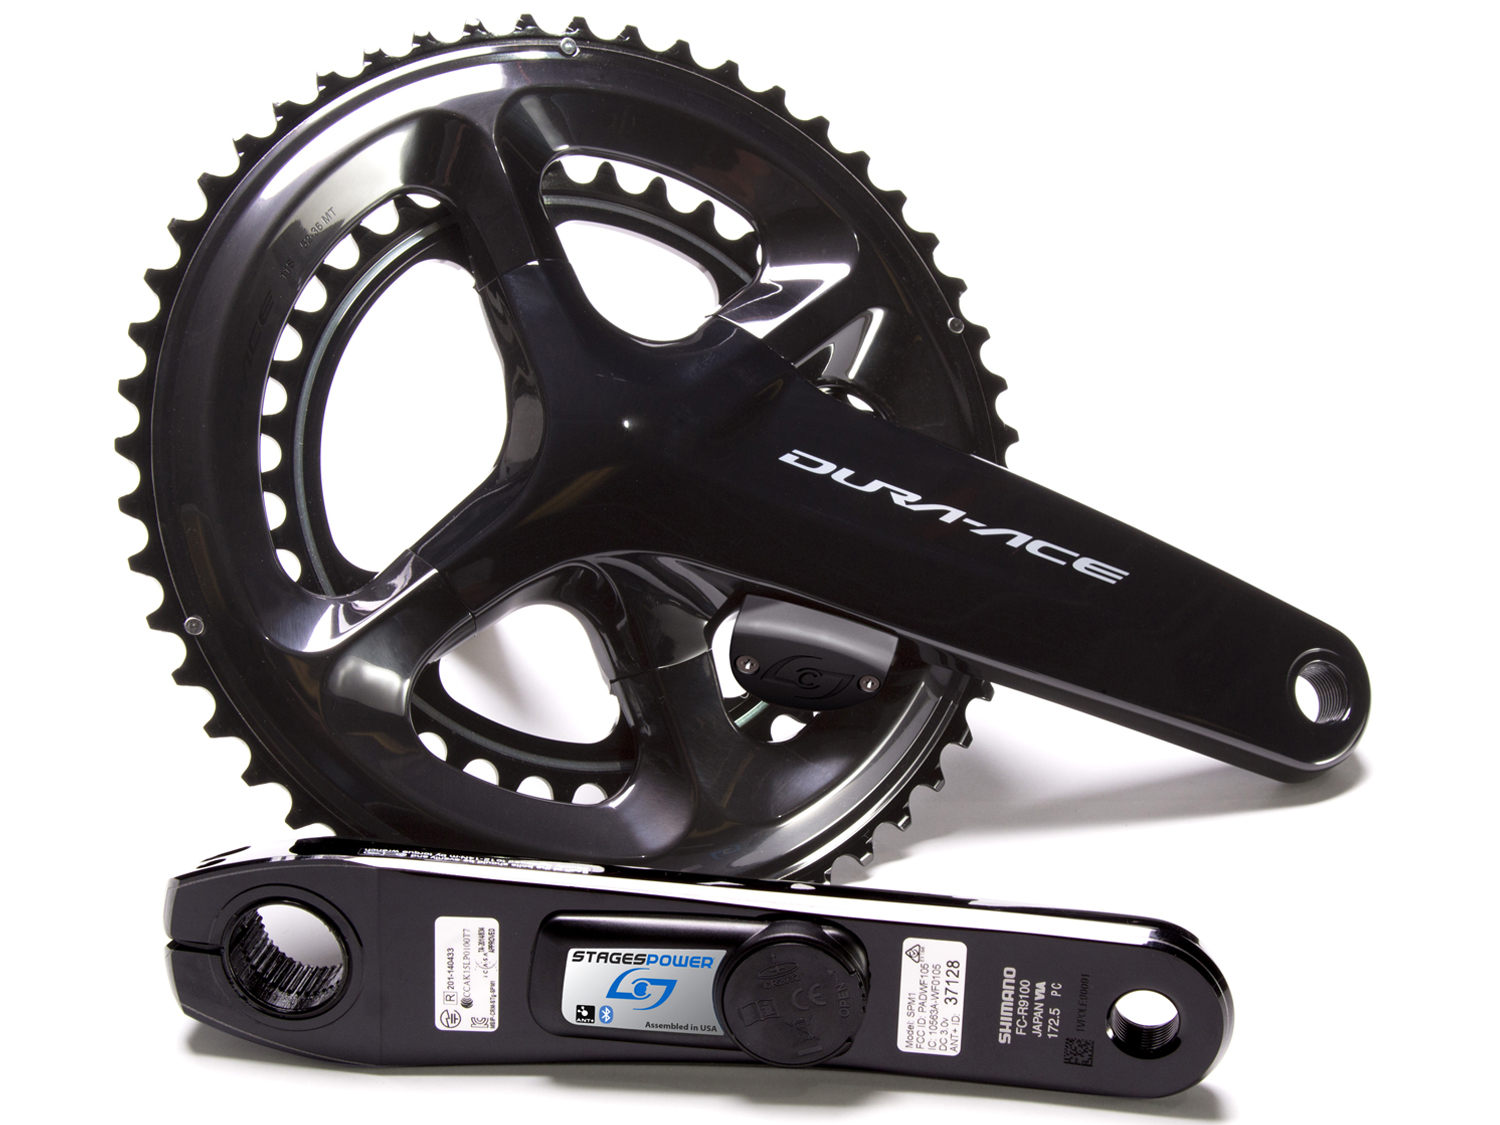 Stages Power Dual L/R Shimano Dura-Ace 9100